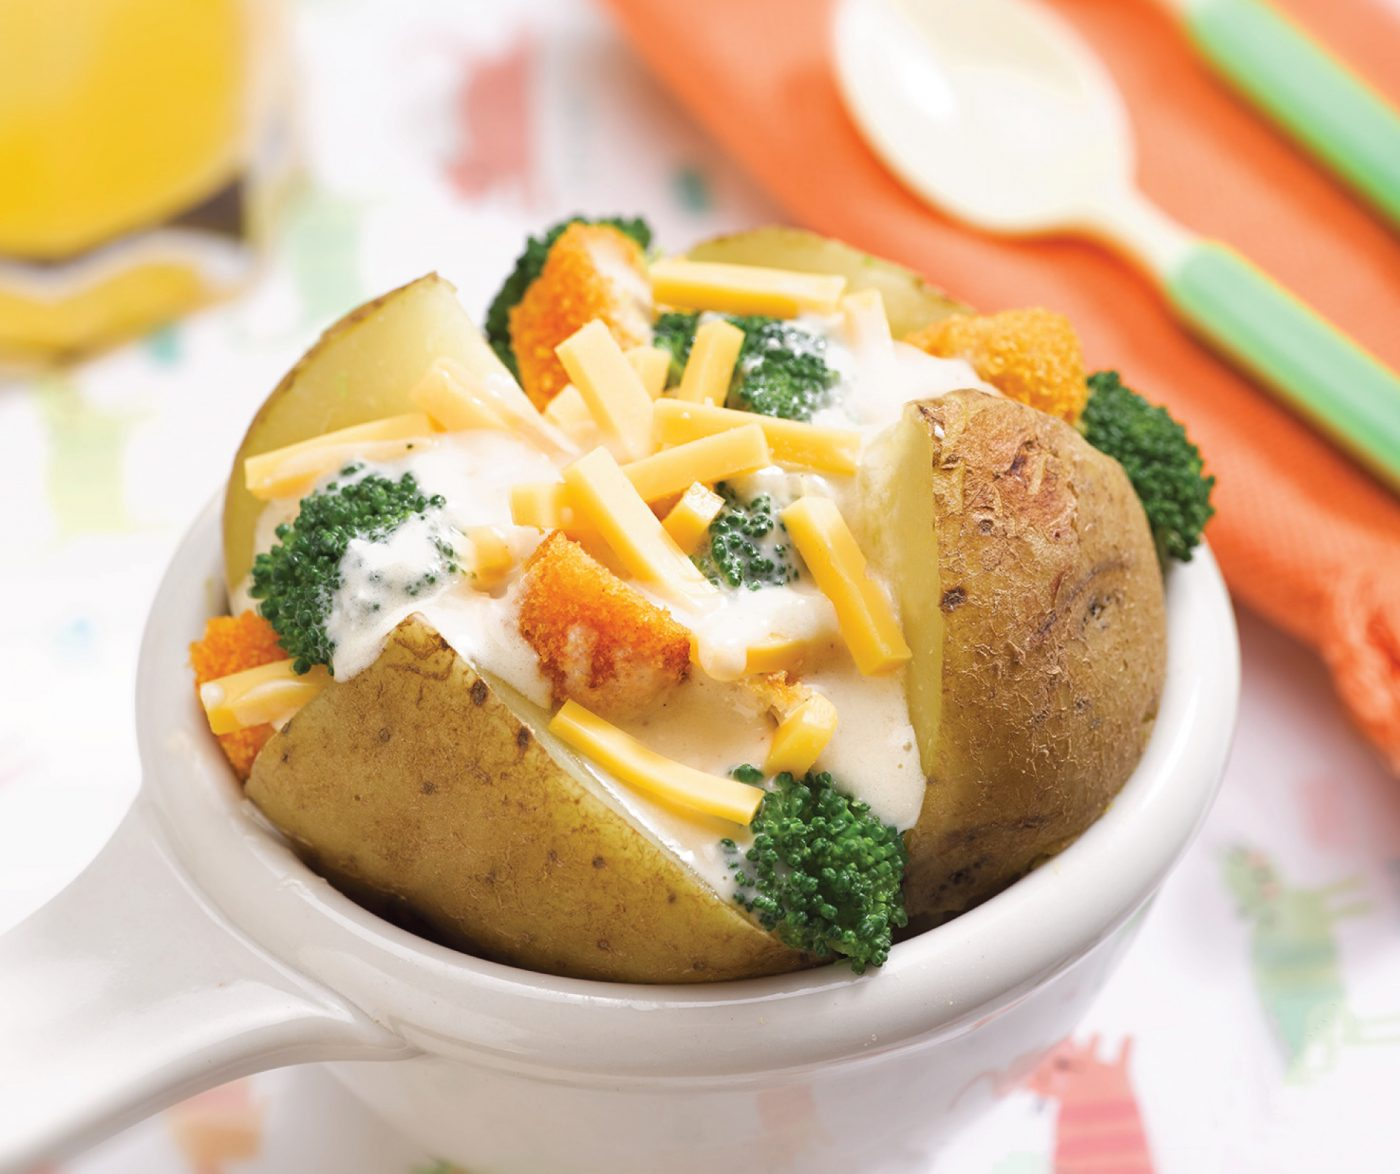 Image Cheese Jacket Potato With So Good Chicken Stick